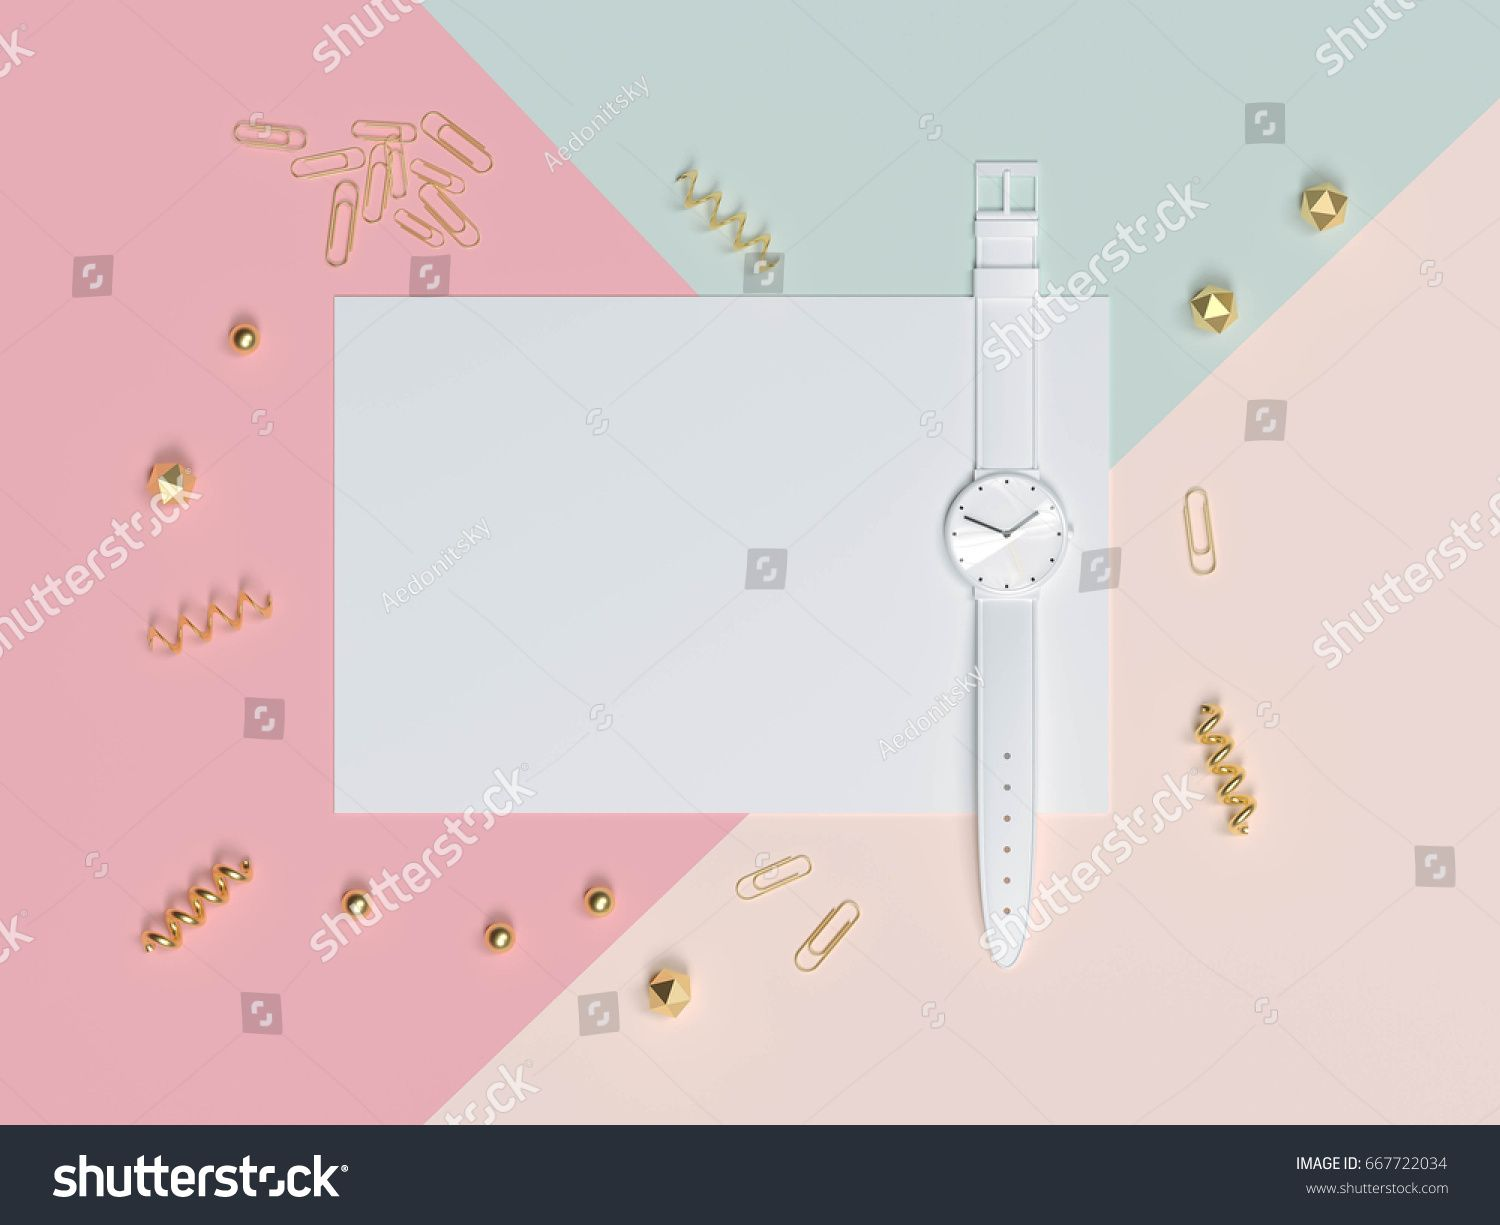 Empty Black Frame Mock Up With Decorative Elements On Pink Wall Background And White Table Surface